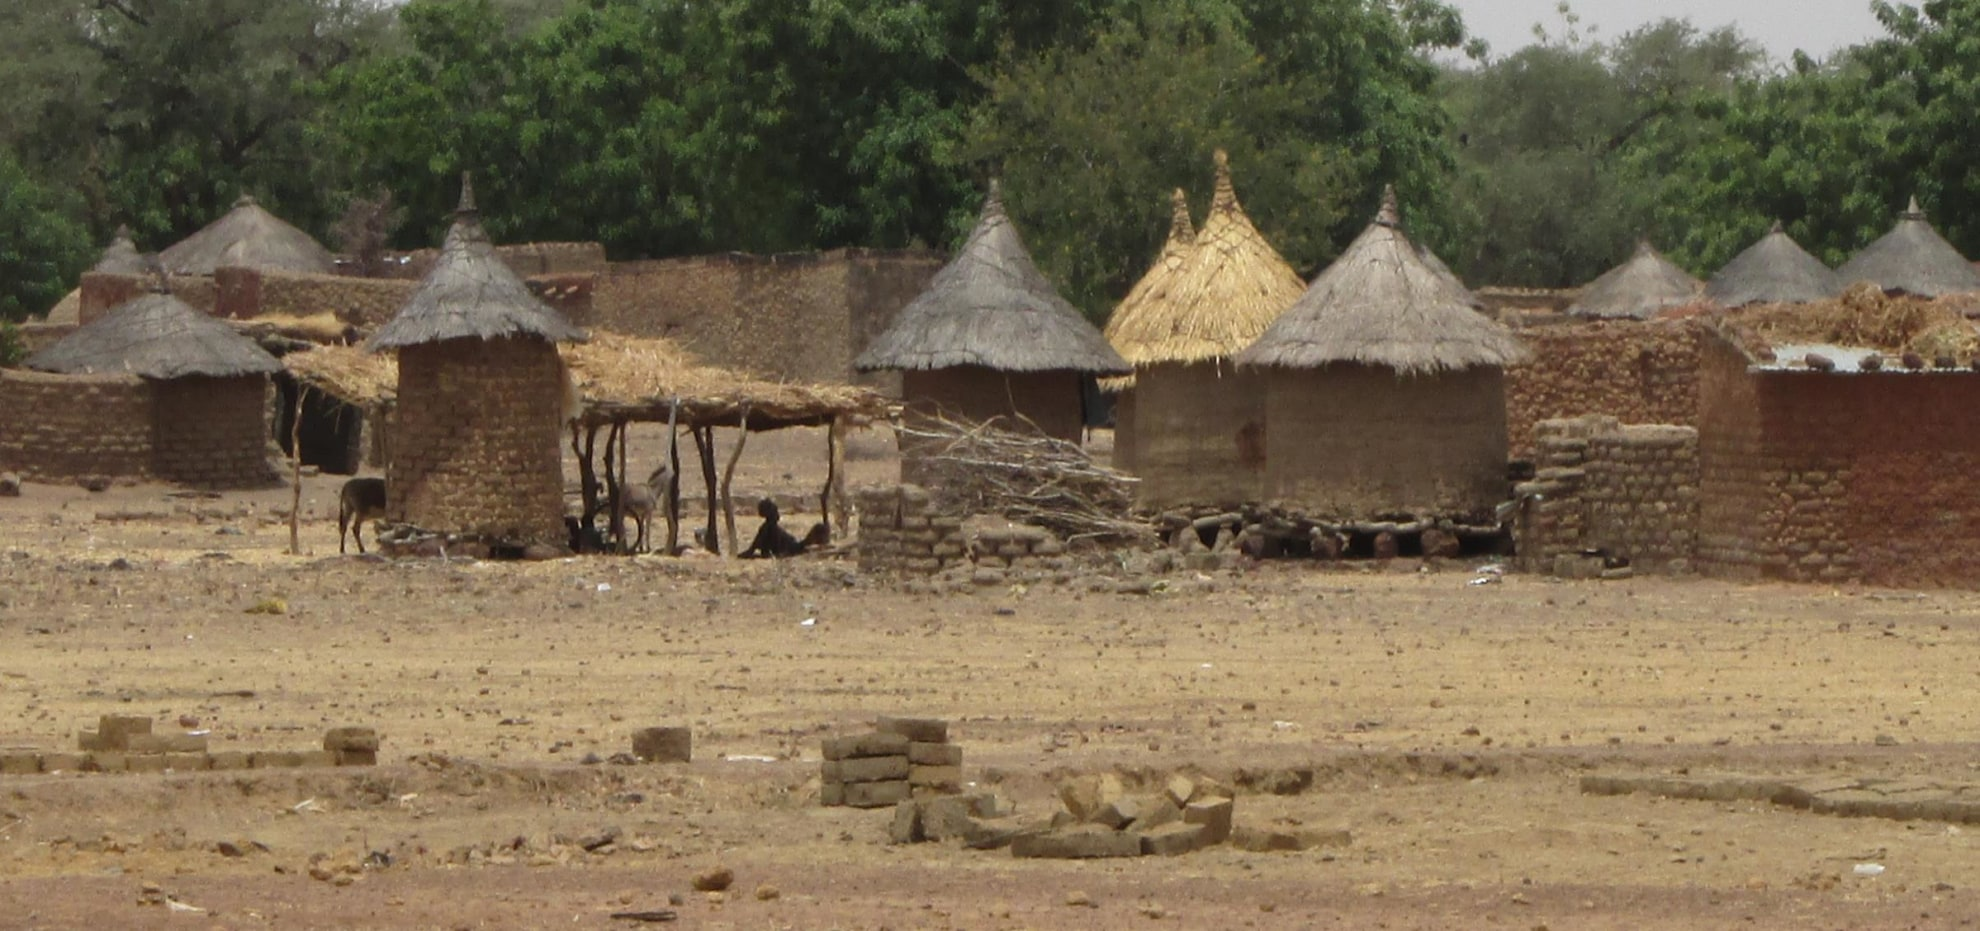 A village in sub-Saharan Africa